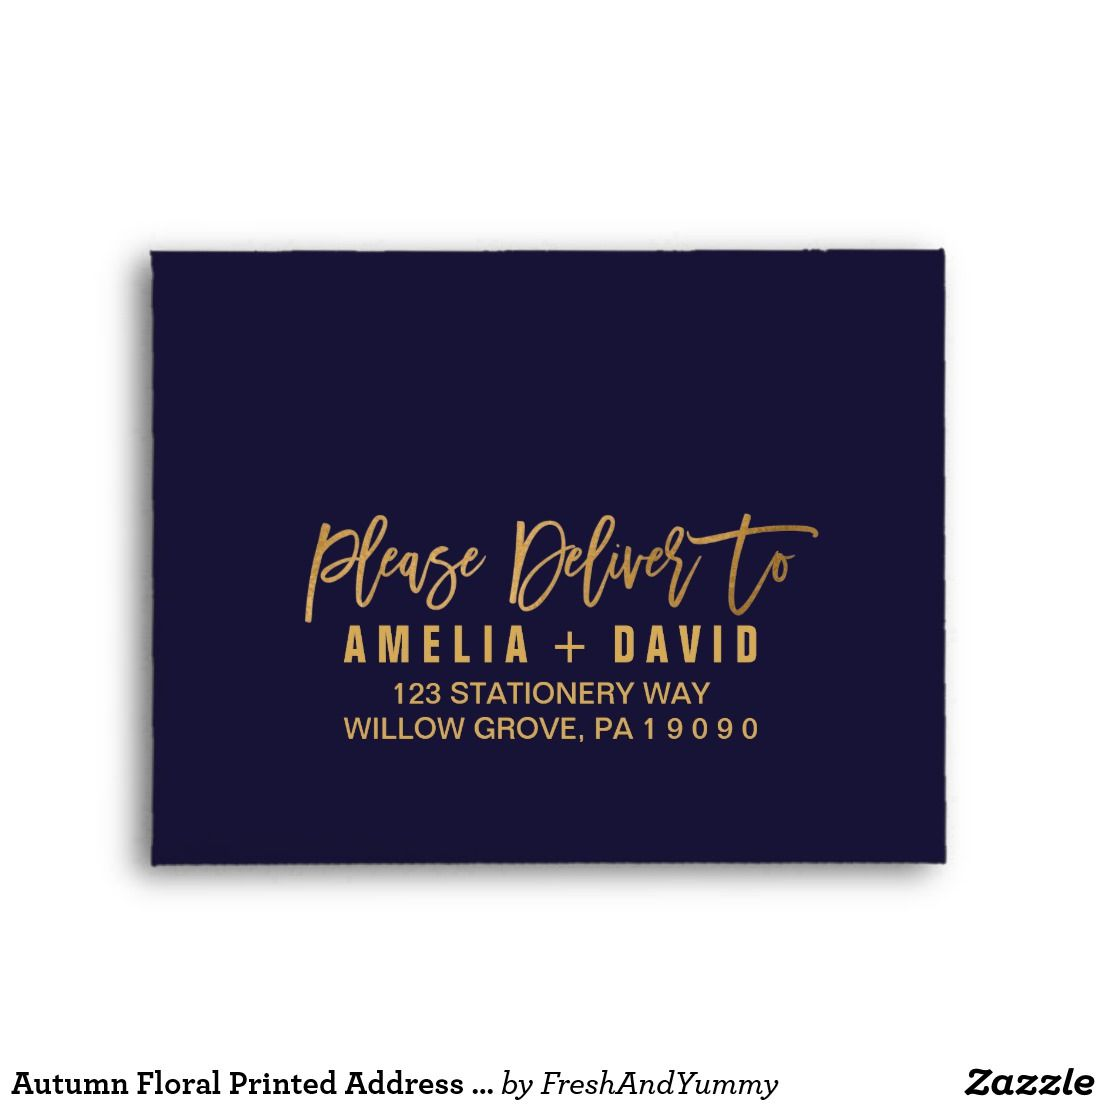 autumn floral printed address rsvp envelope these autumn floral